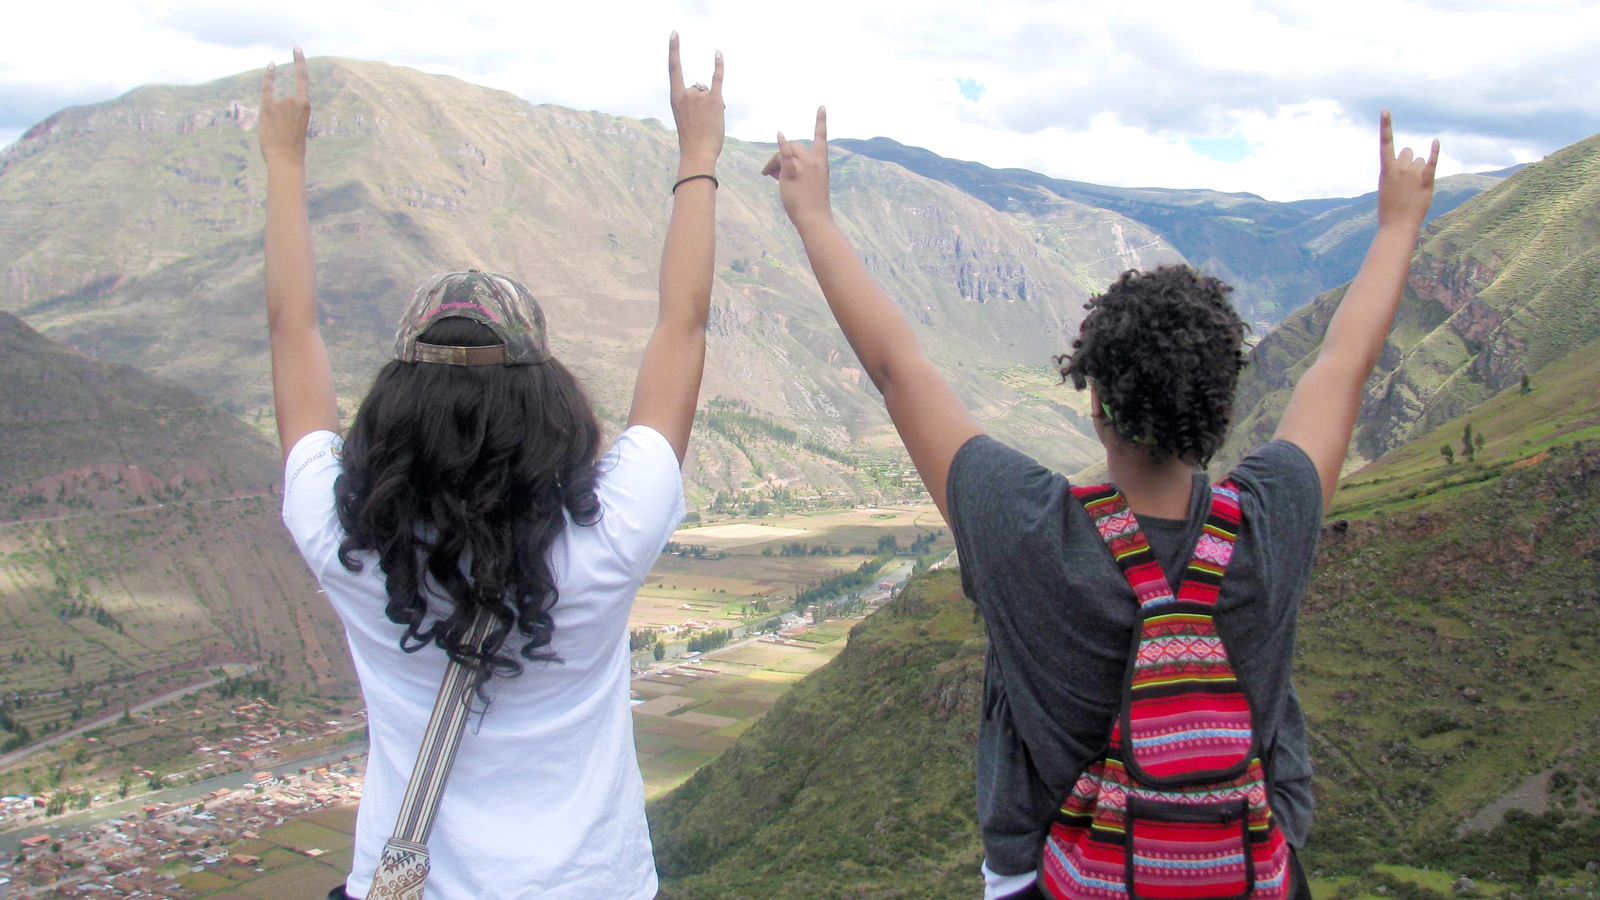 Two NC Stat students throw up the wolf hands while on study abroad.